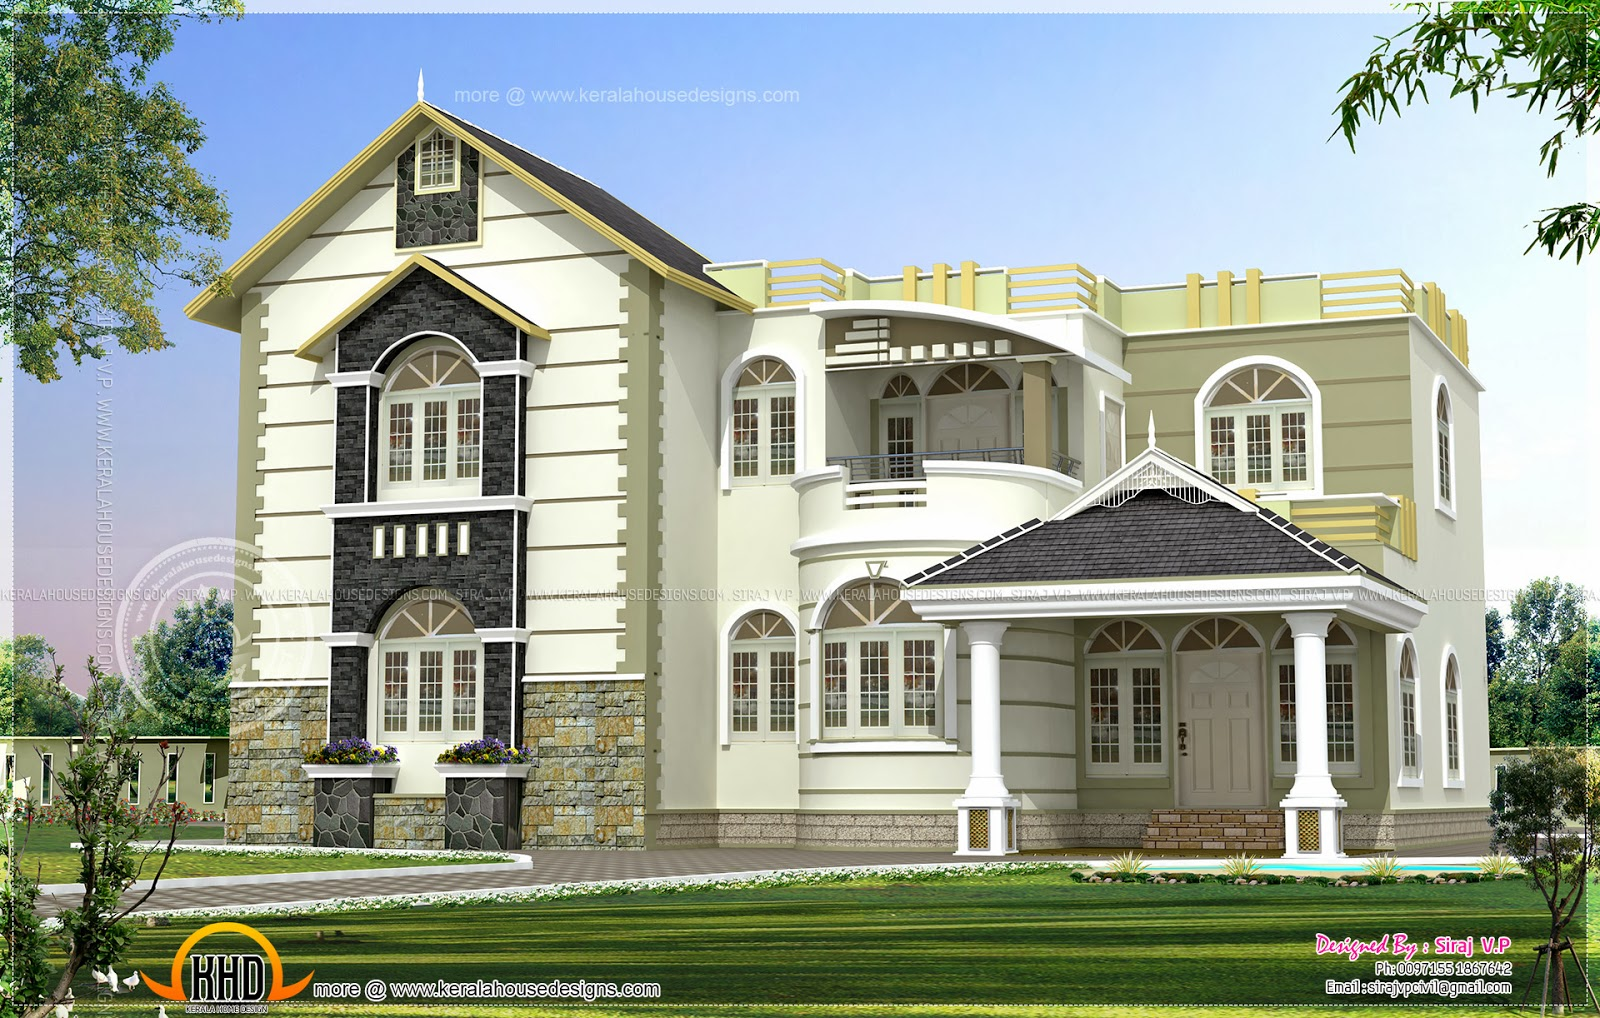 One house exterior design in two color combinations home for Home colour design exterior